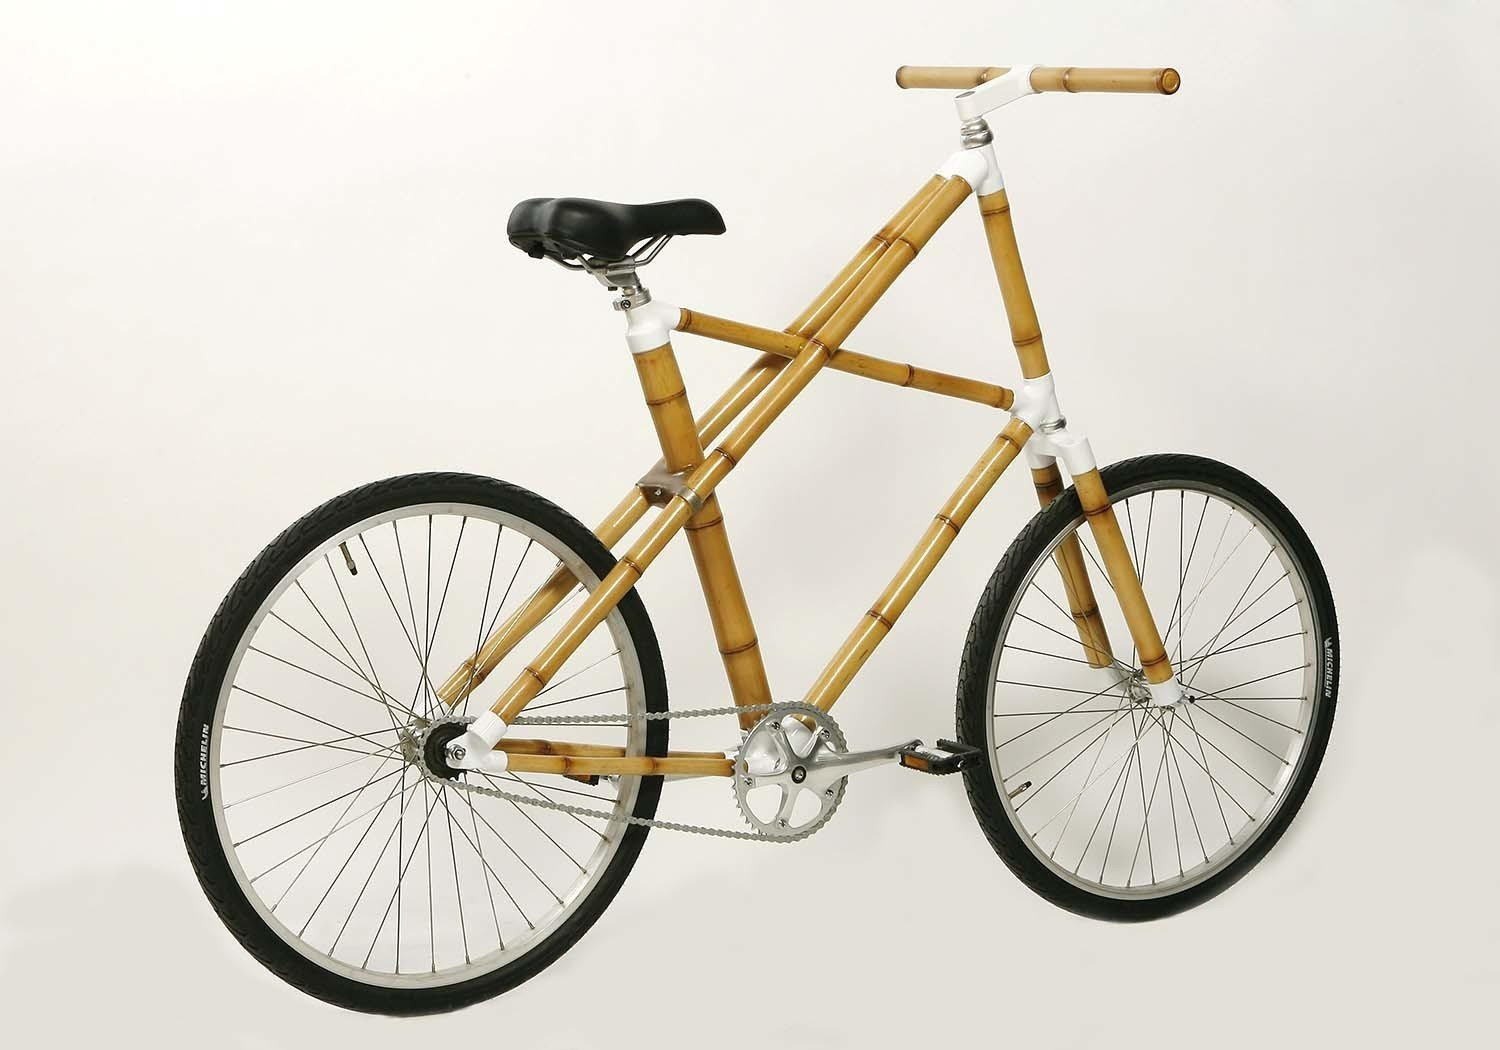 Gustav cycle by Coh&Co, 2015.